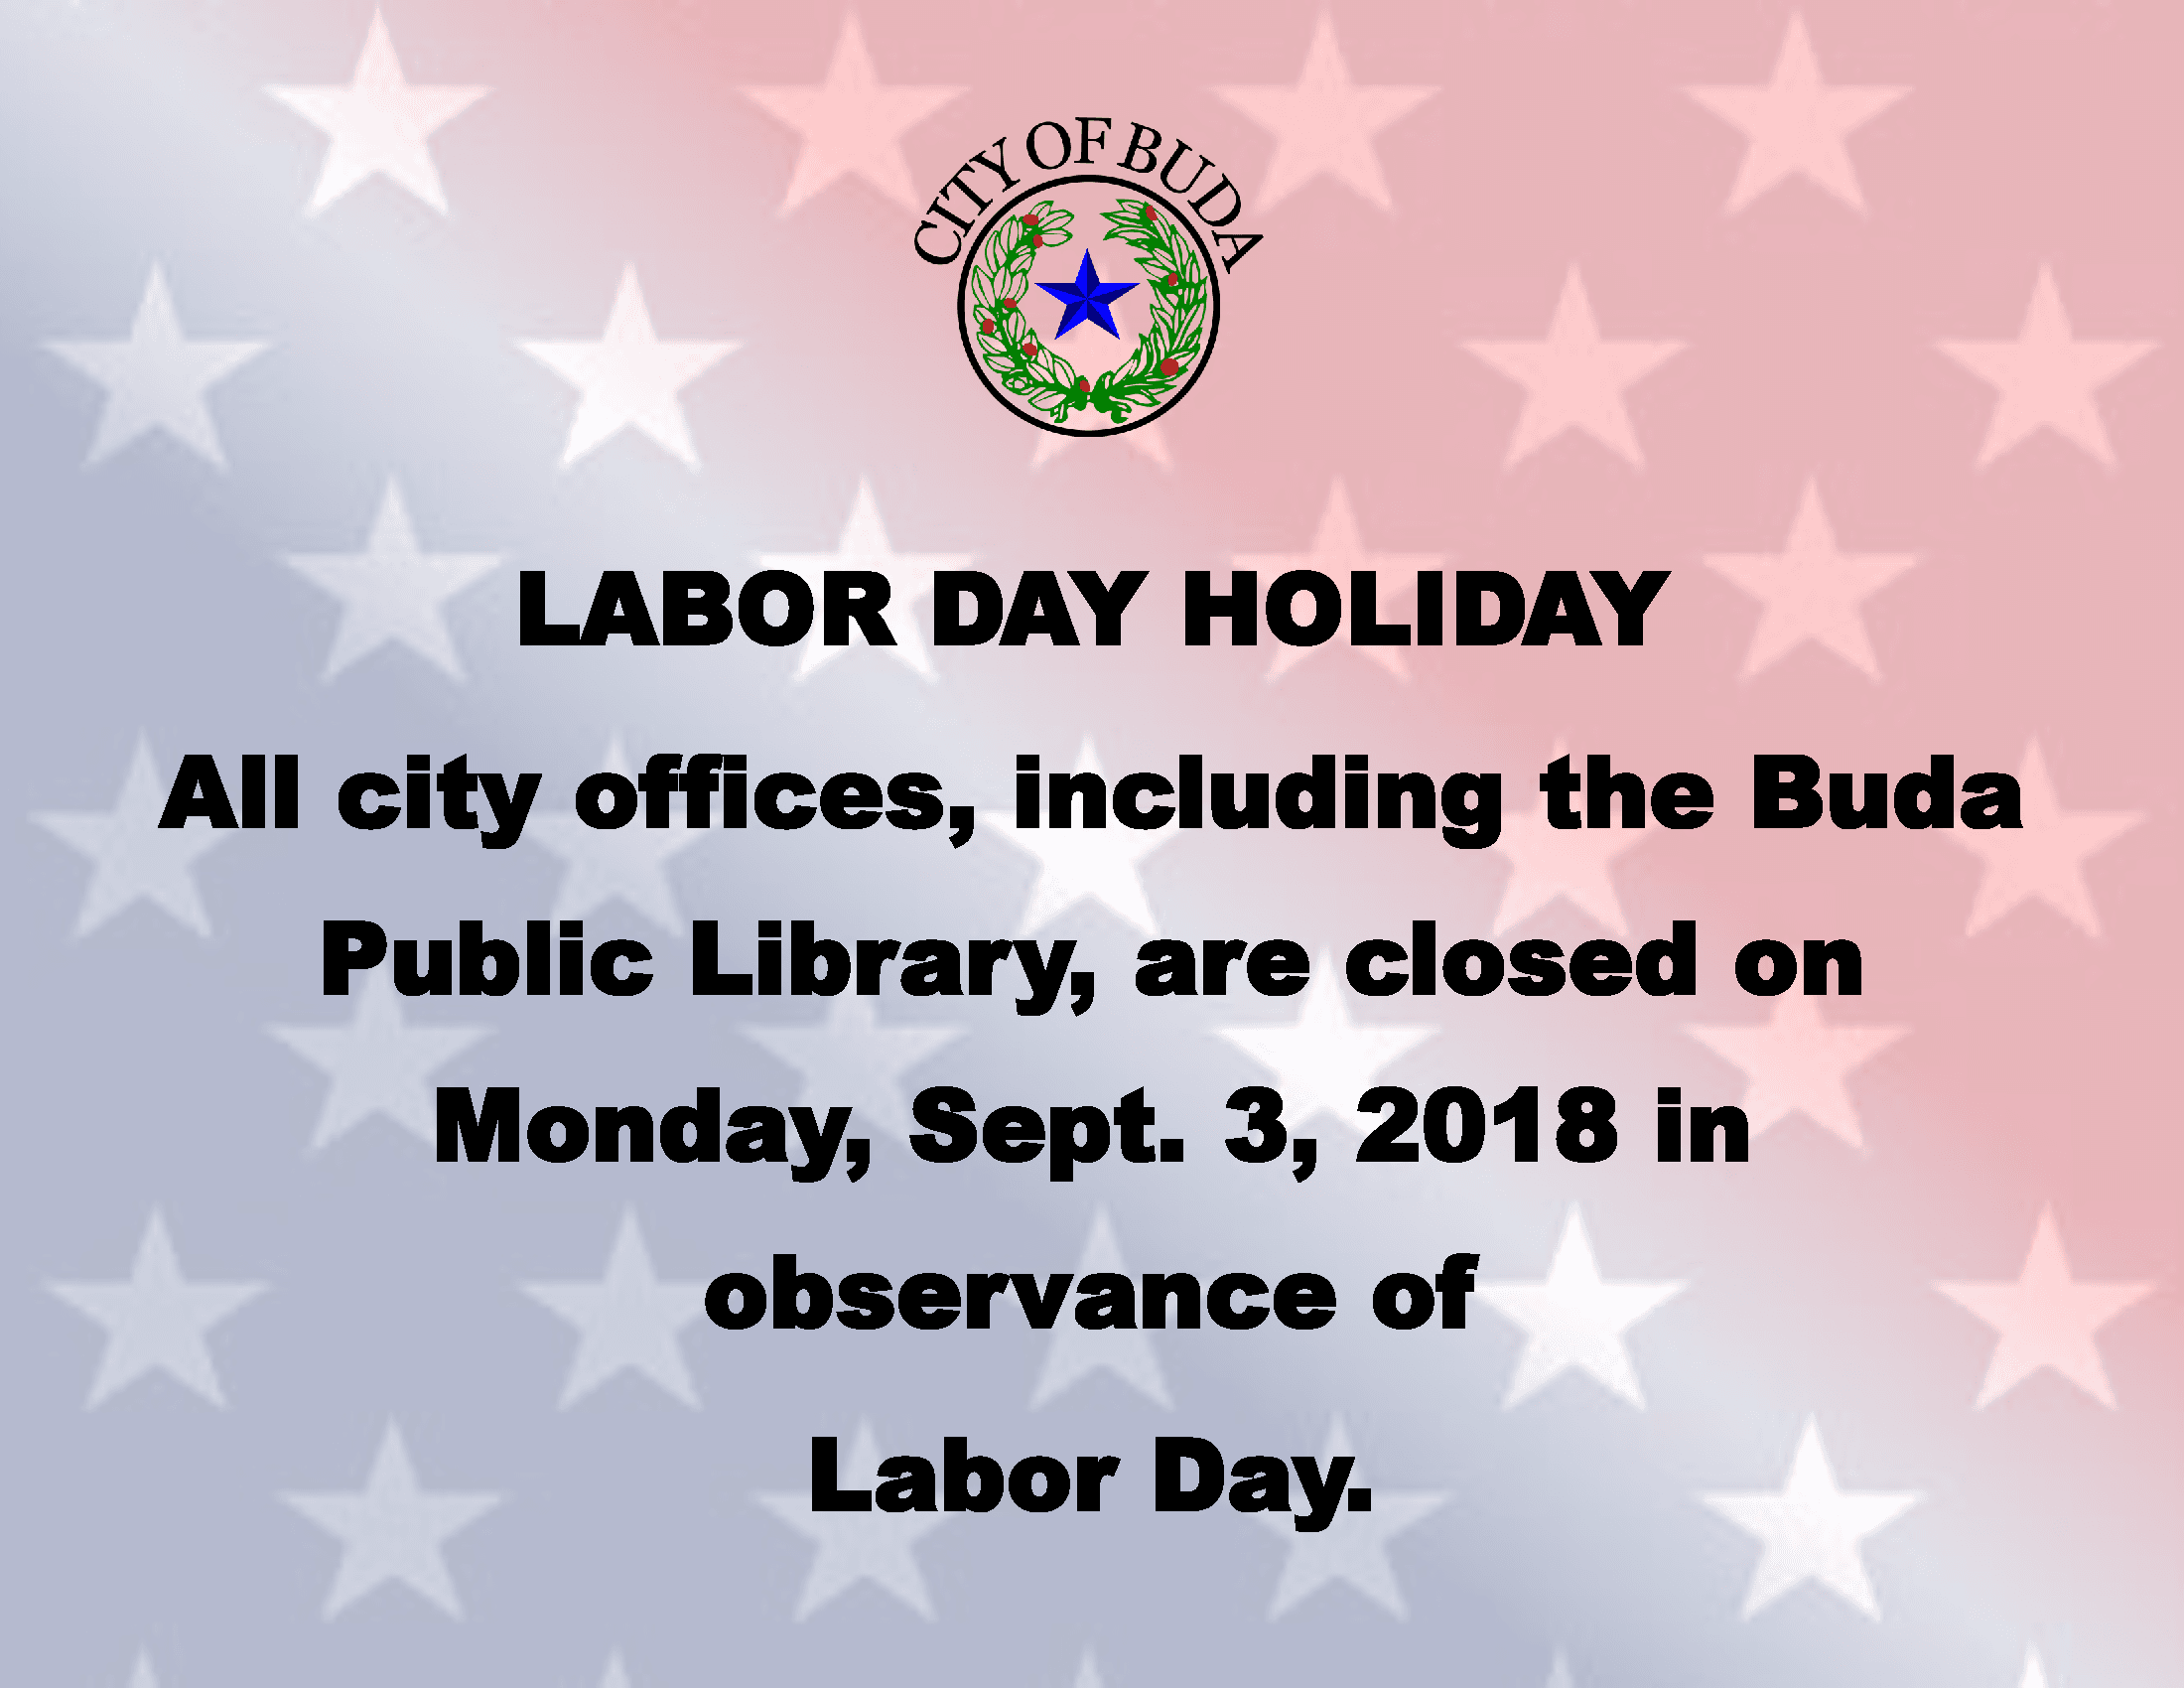 Labor Day Holiday 2018